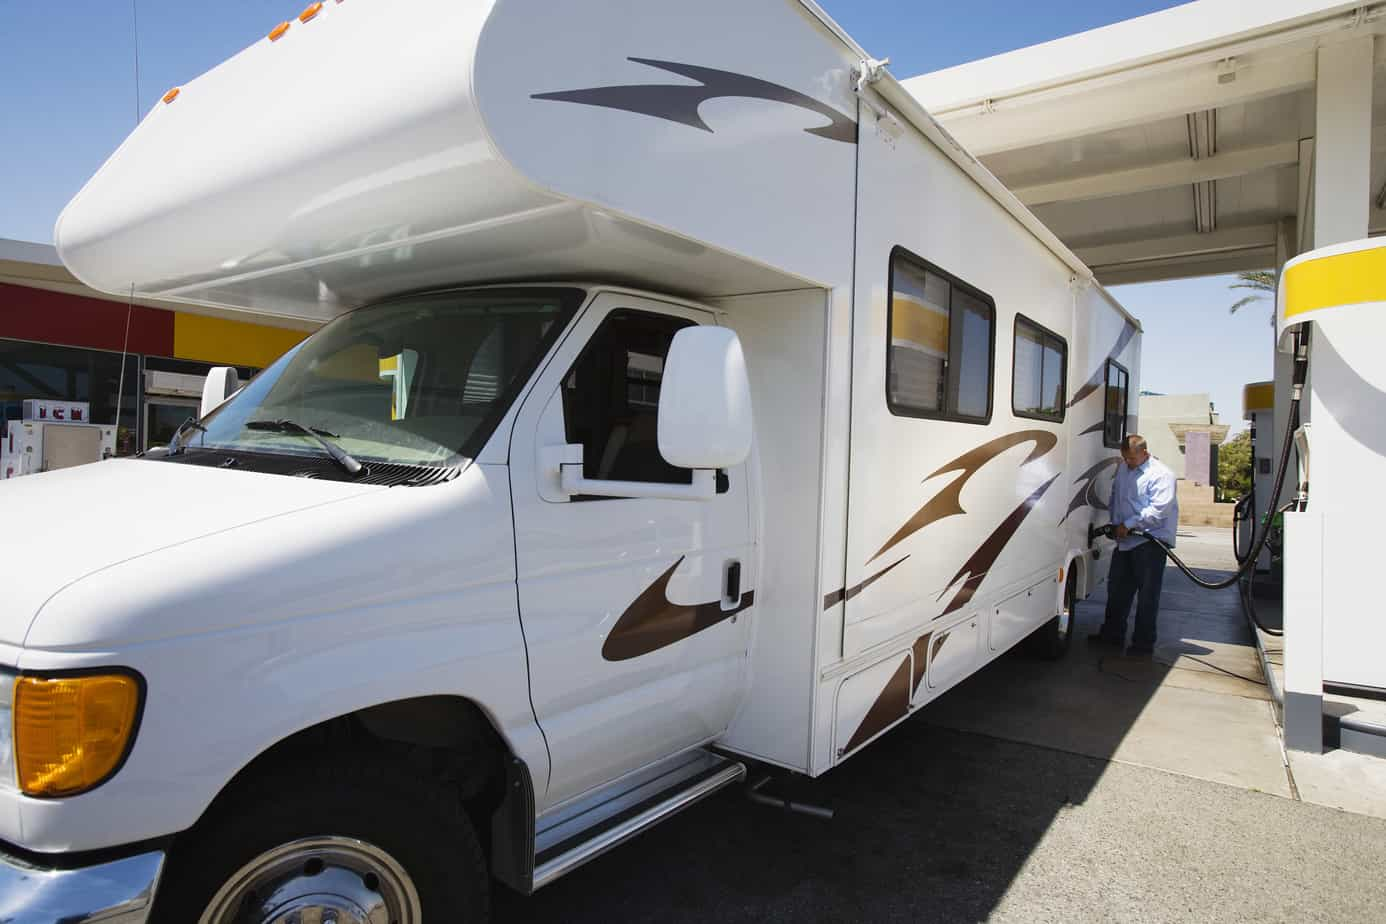 Medicare? Don't take an RV trip until you read this!